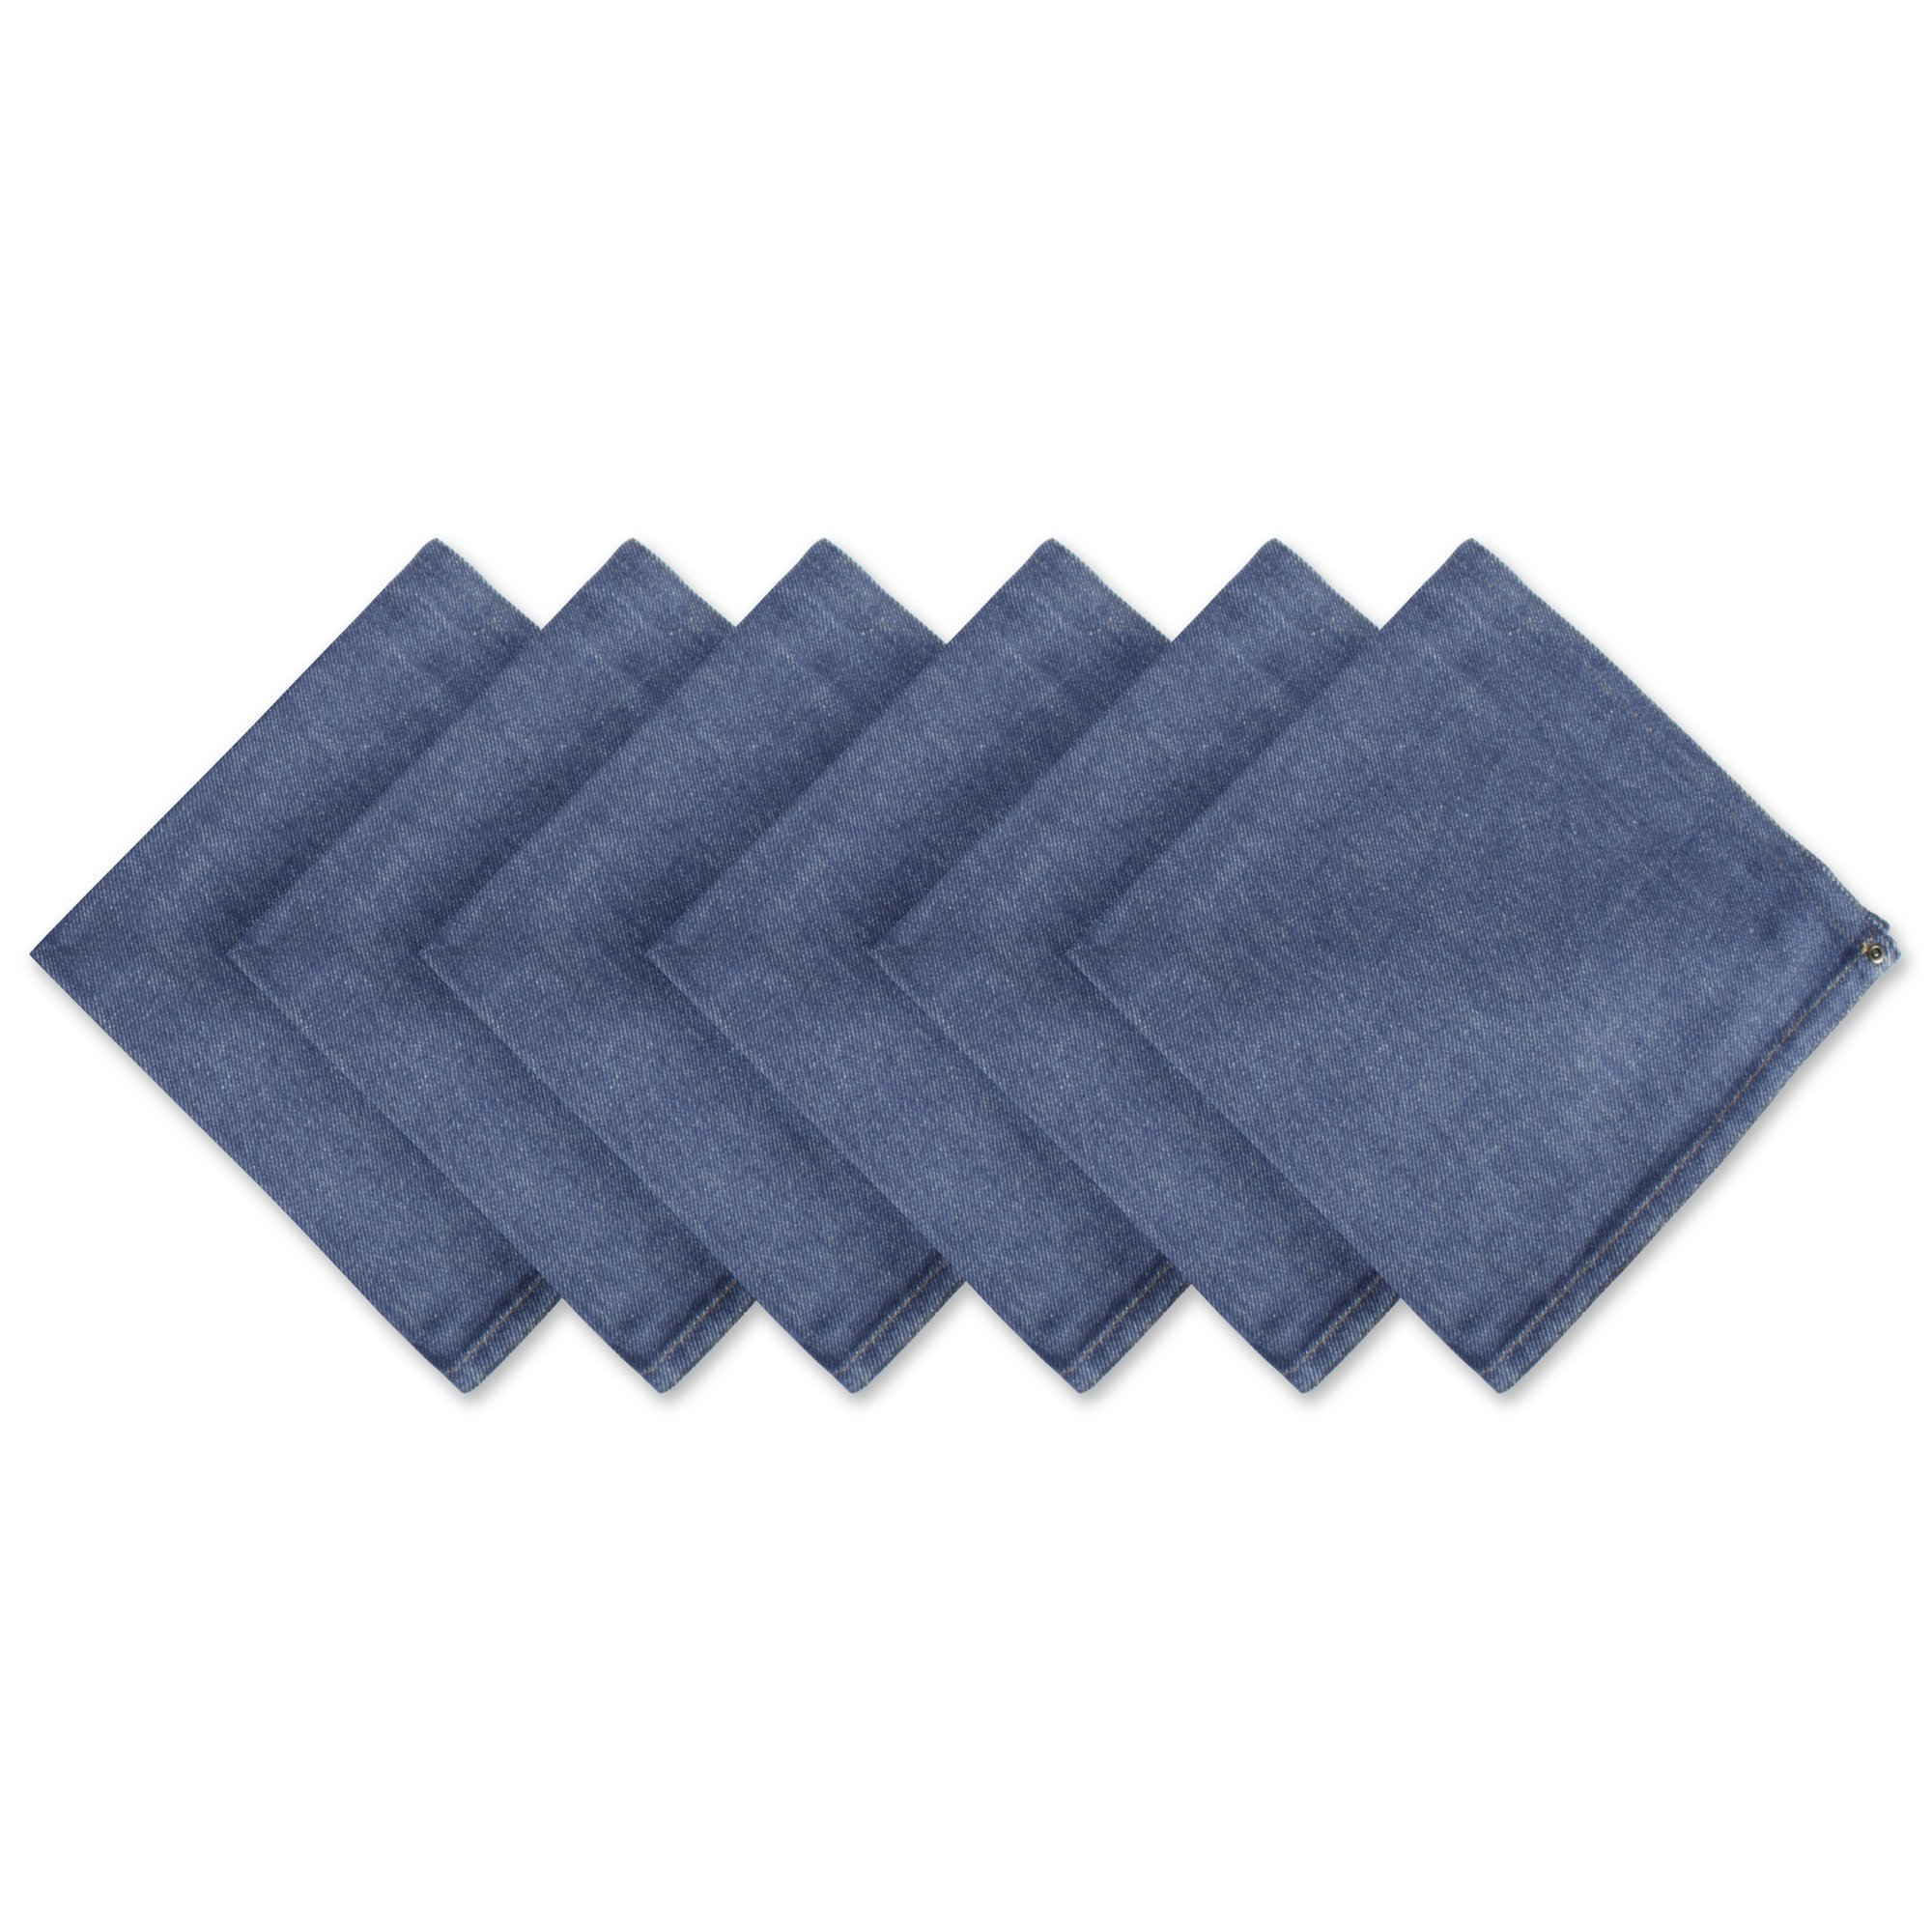 DII 100% Cotton Cloth Napkins, Oversized 20x20'' Dinner Napkins, For Basic Everyday Use, Banquets, Weddings, Events, or Family Gatherings - Set of 6, Denim by DII (Image #1)